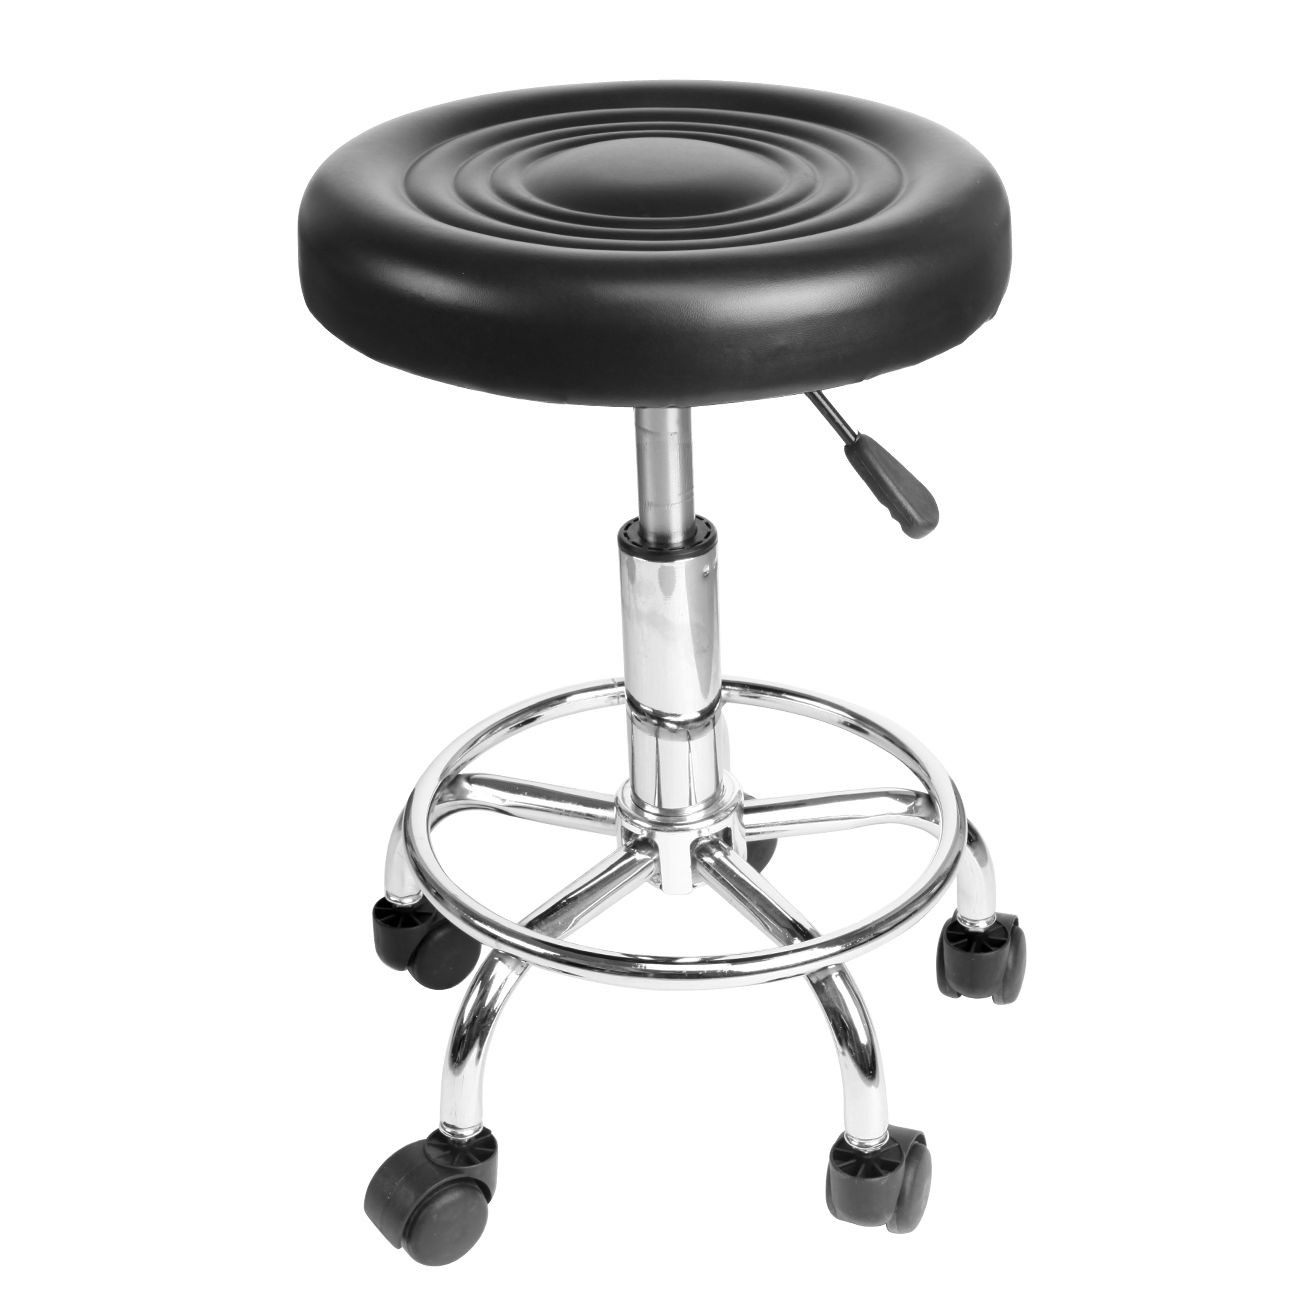 Hydraulic Rolling Swivel Stool Adjustable Tattoo Facial Massage Spa Salon Black rolling salon stool swivel hydraulic saddle chair chromed steel